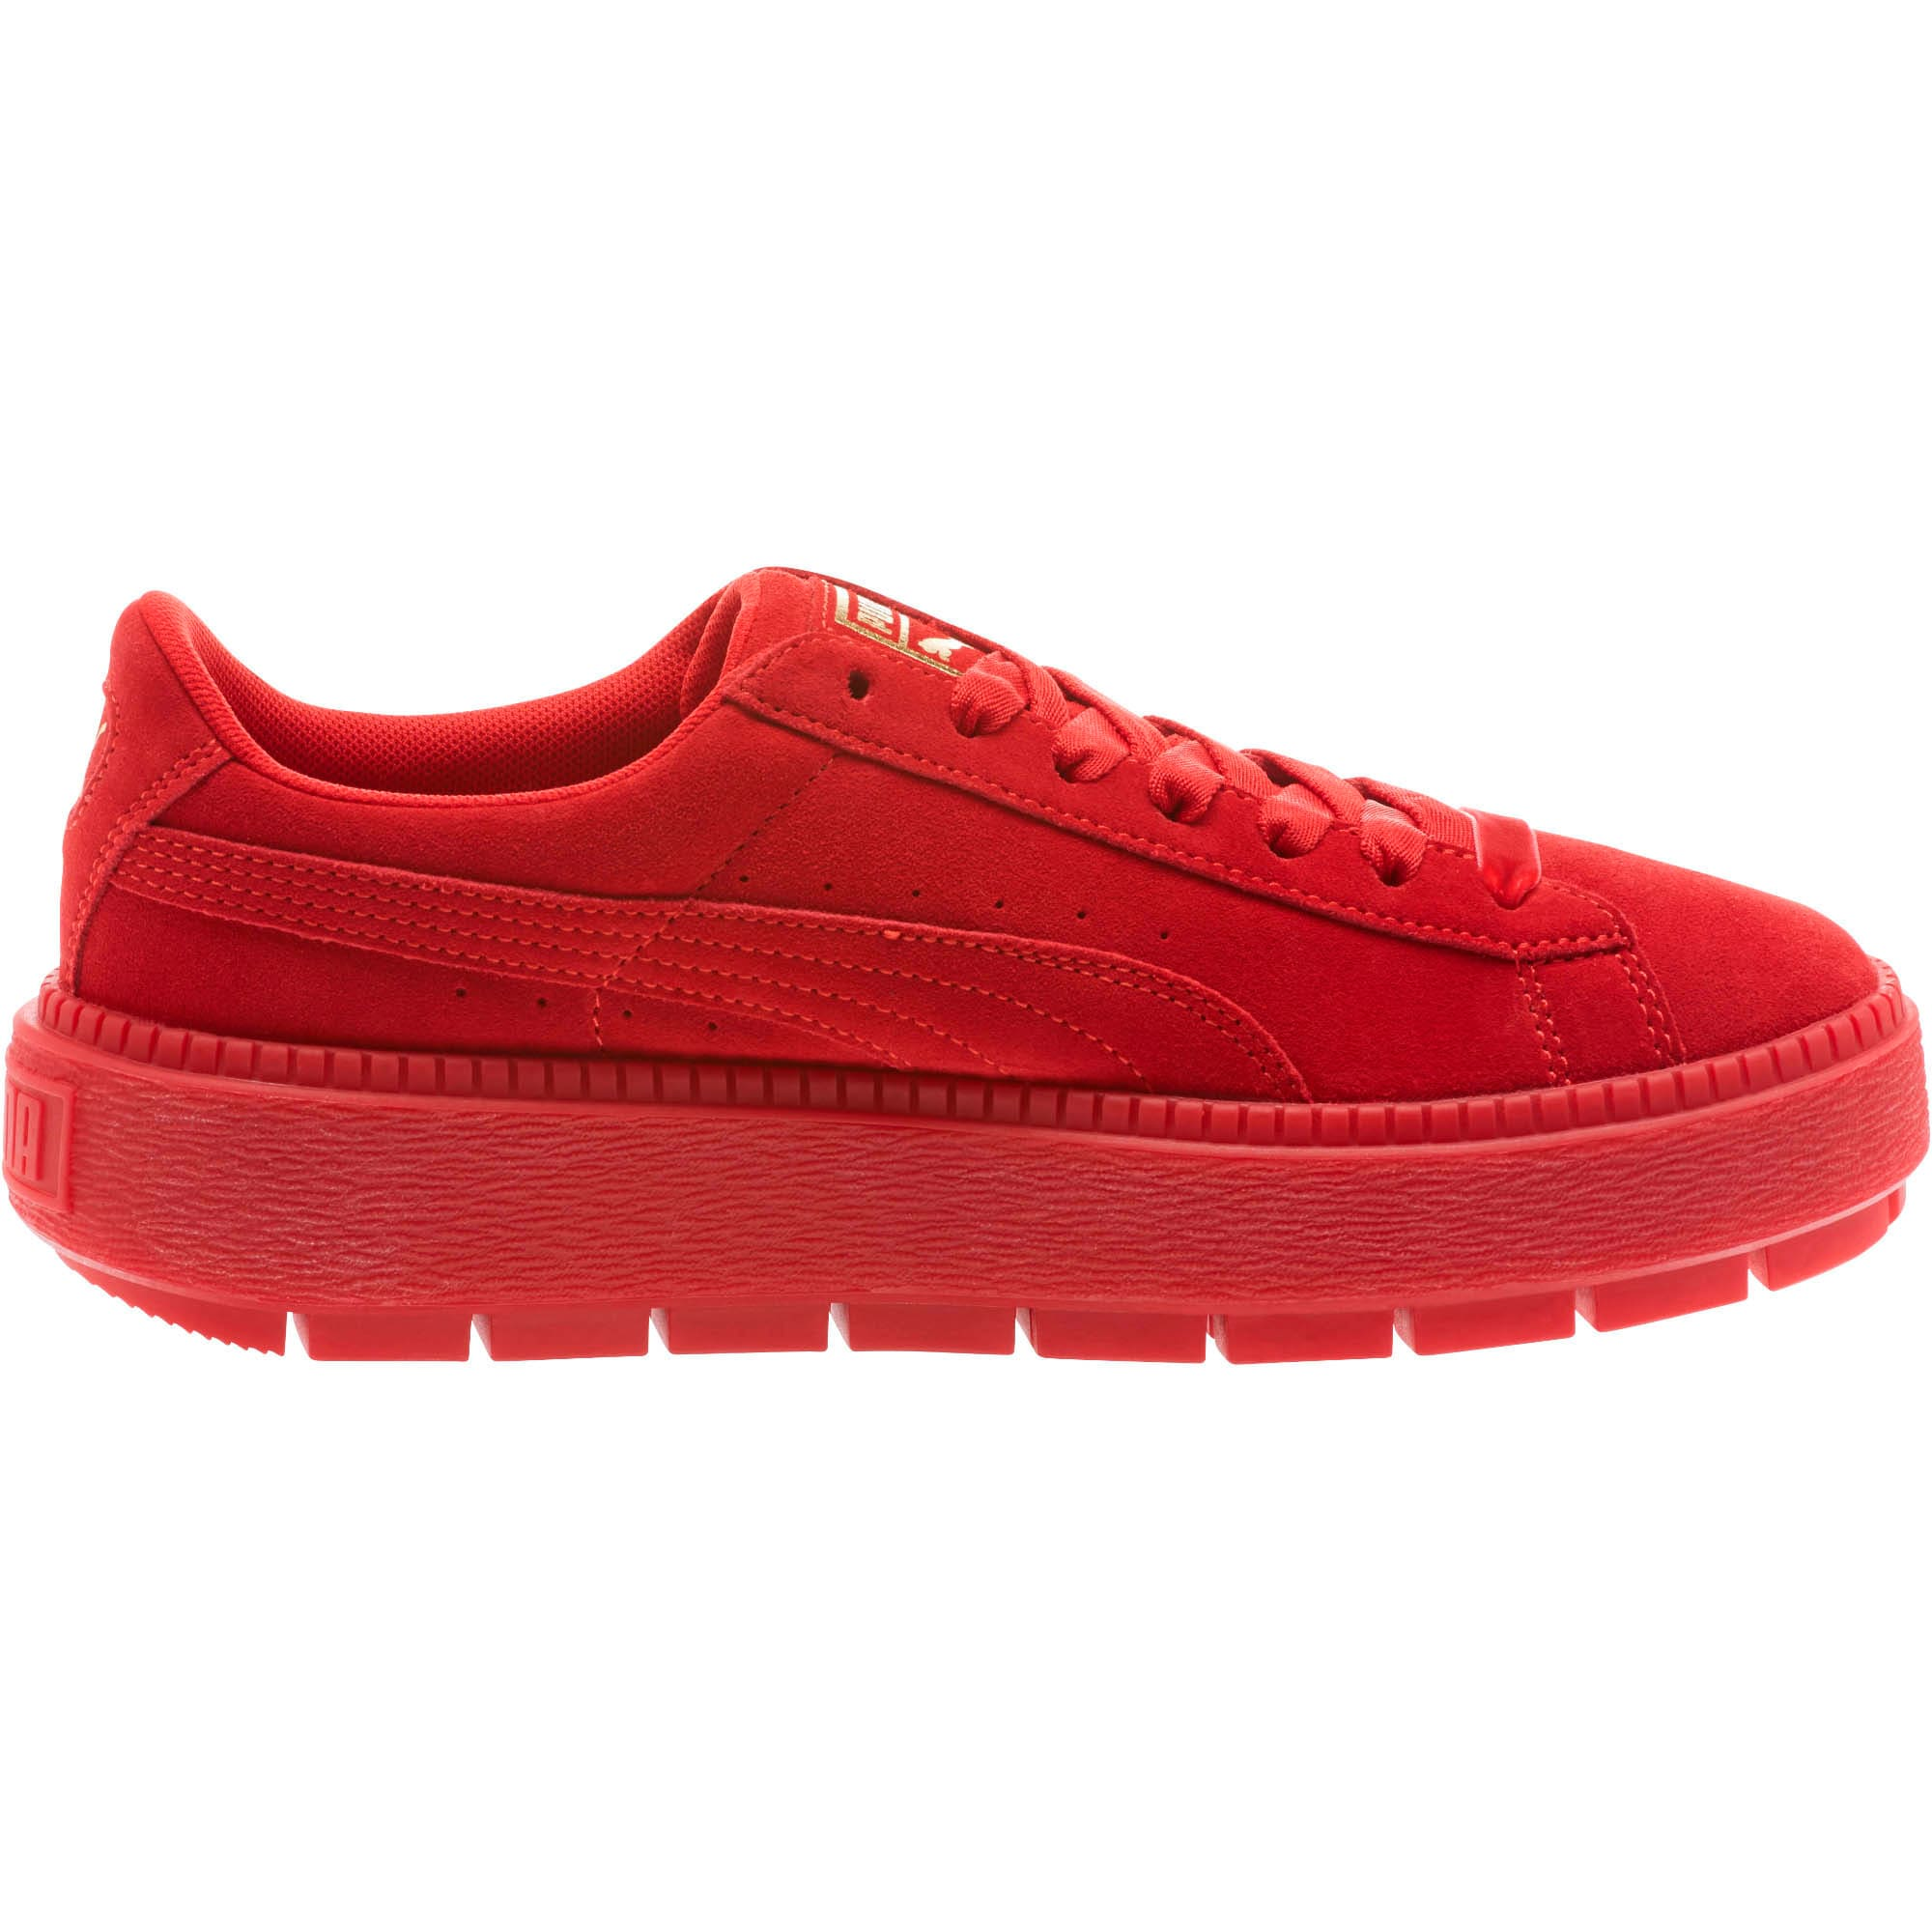 Thumbnail 3 of Suede Platform Trace Valentine's Day Women's Sneakers, Red Dahlia-Barbados Cherry, medium